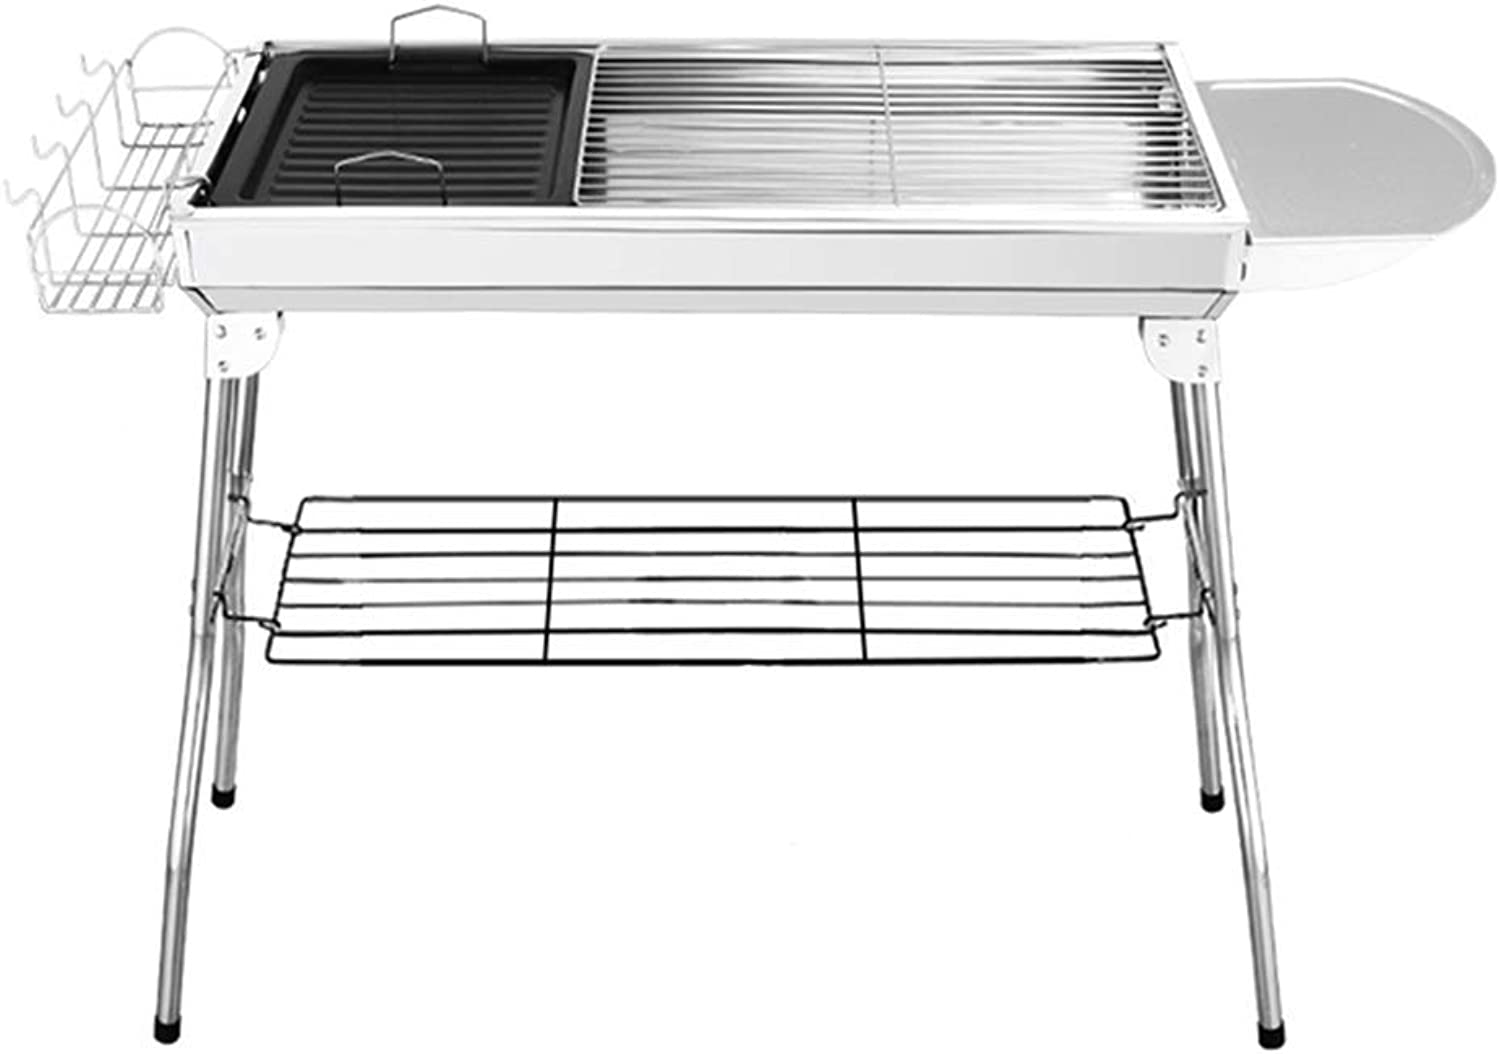 BBQ Supplies Barbecue Easy Barbecues Tool Set Stainless Steel Oven Outdoor Charcoal Tools Camping Beach Party Grill BBQ Full Accessories Carbon